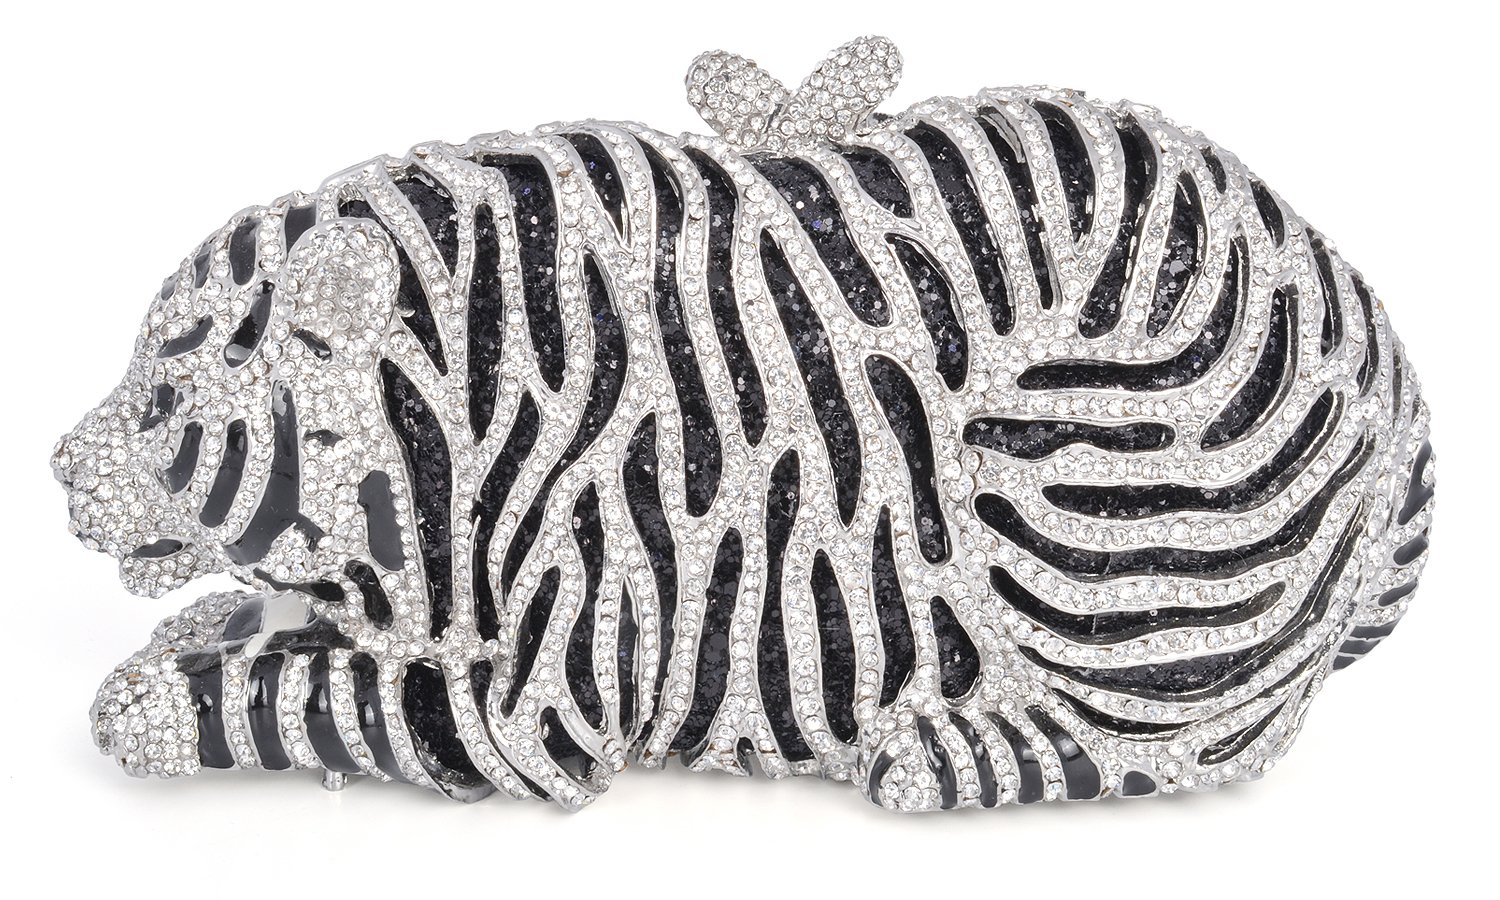 mossmon Luxury Crystal Clutches For Women Tiger Evening Bag (Silver) by Mossmon (Image #1)